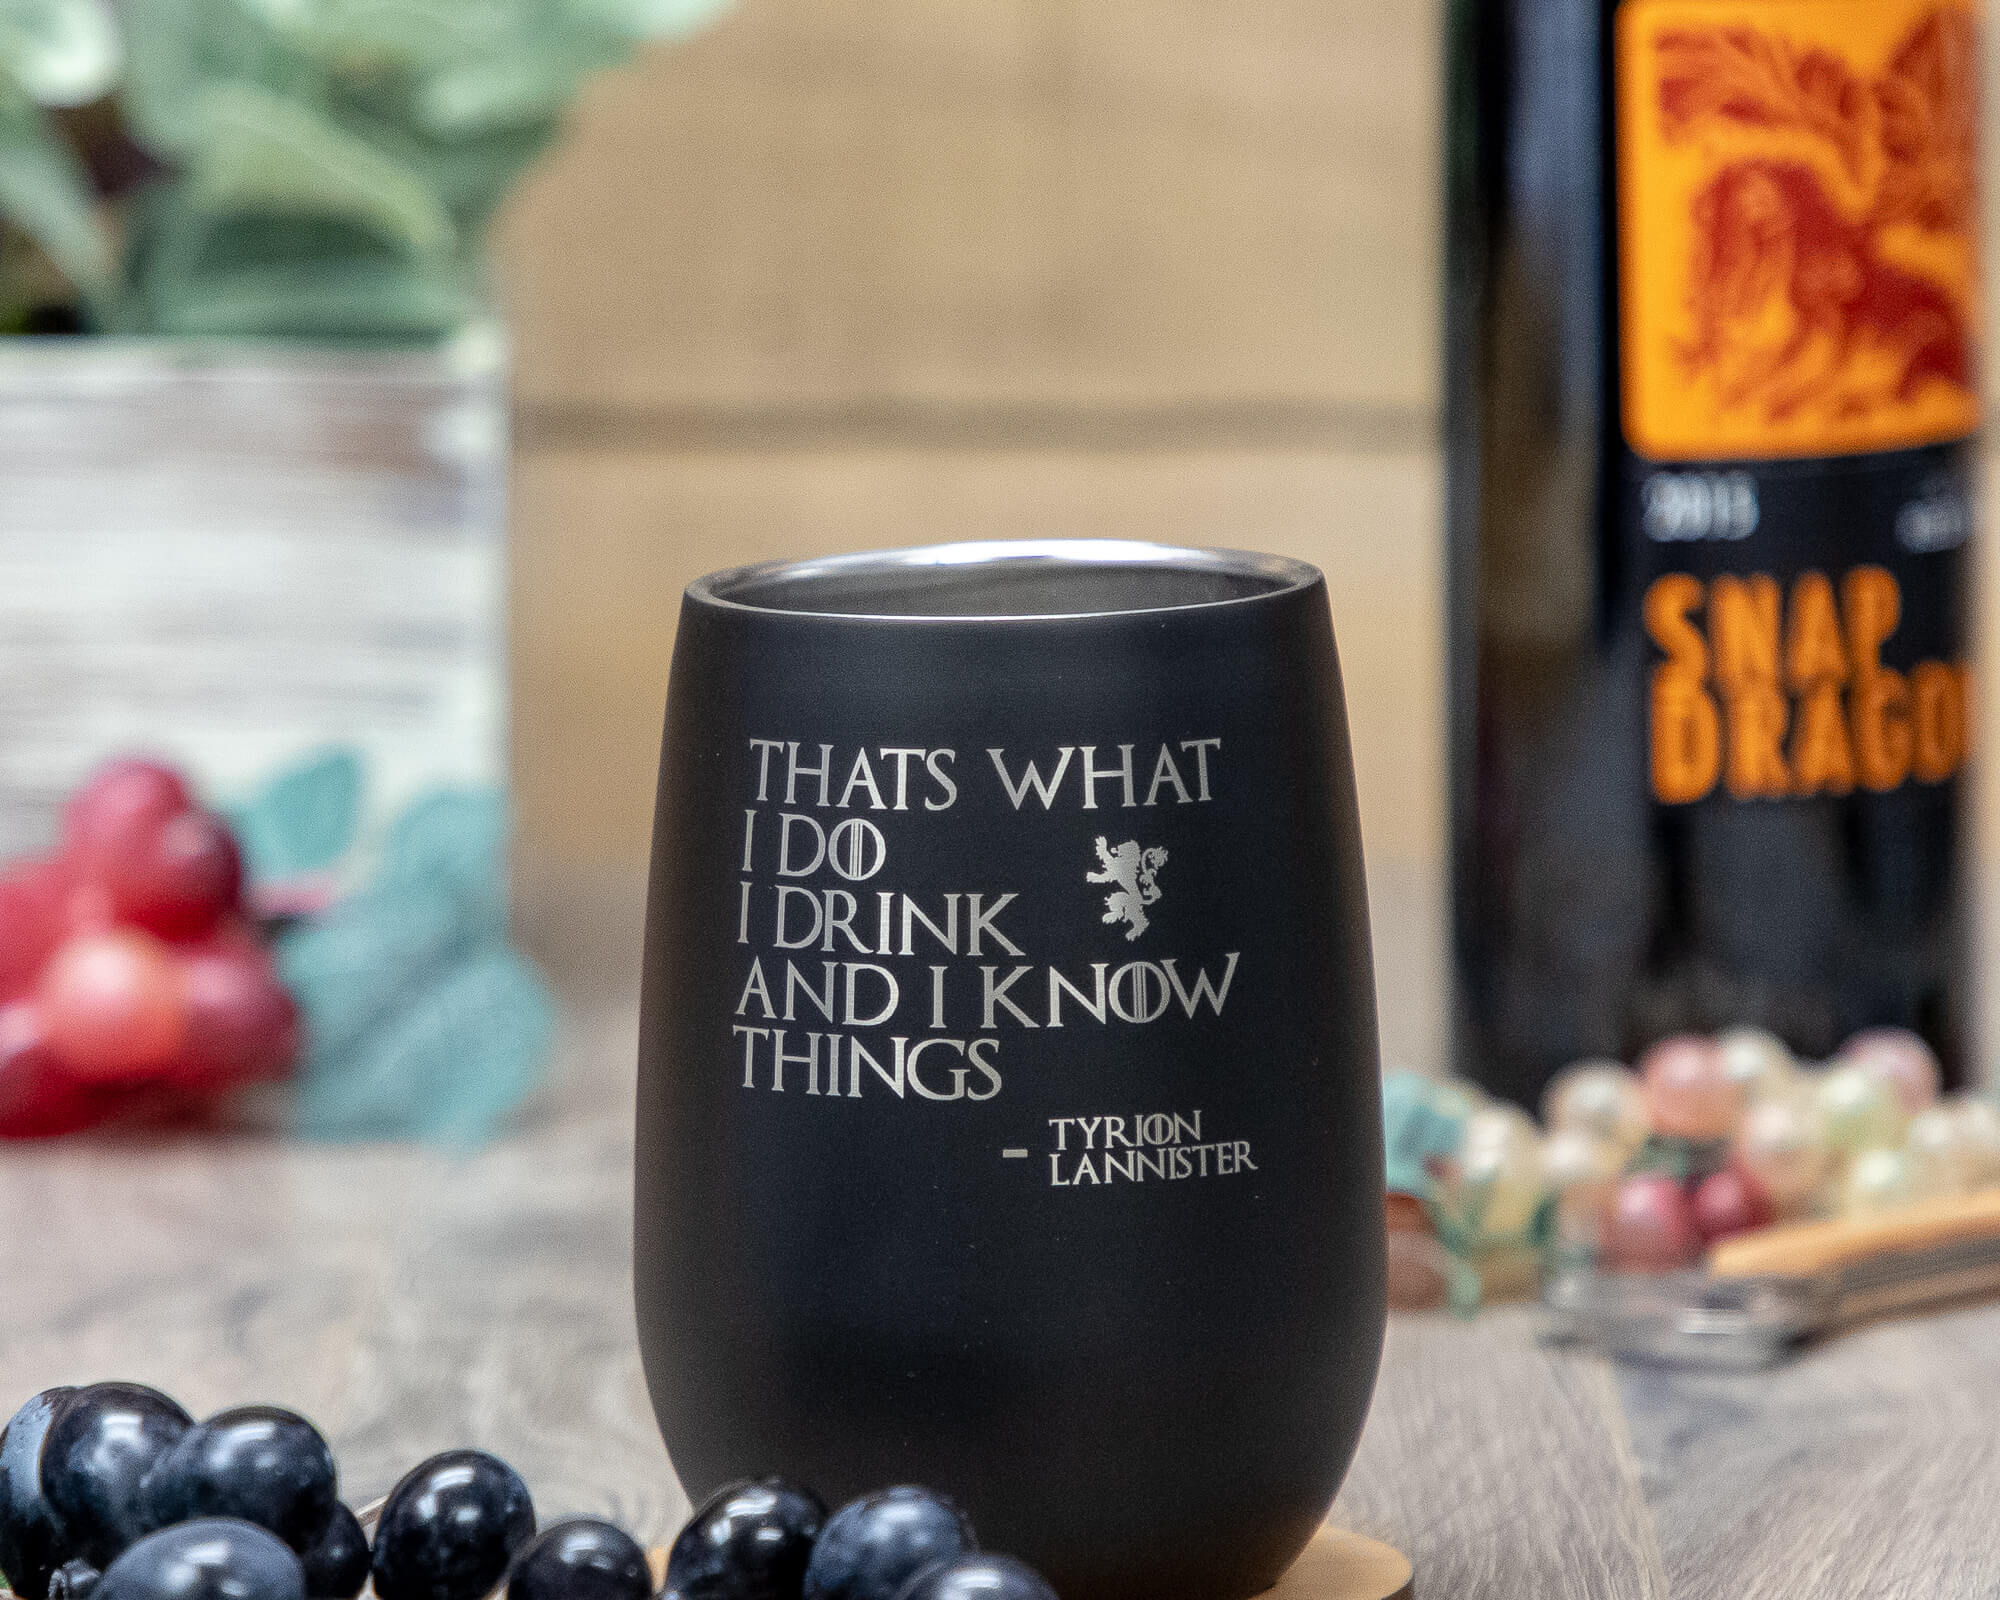 Game-of-Thrones-Wine-Glass-Gift-Drink-and-Know-Things 9.27.24 PM